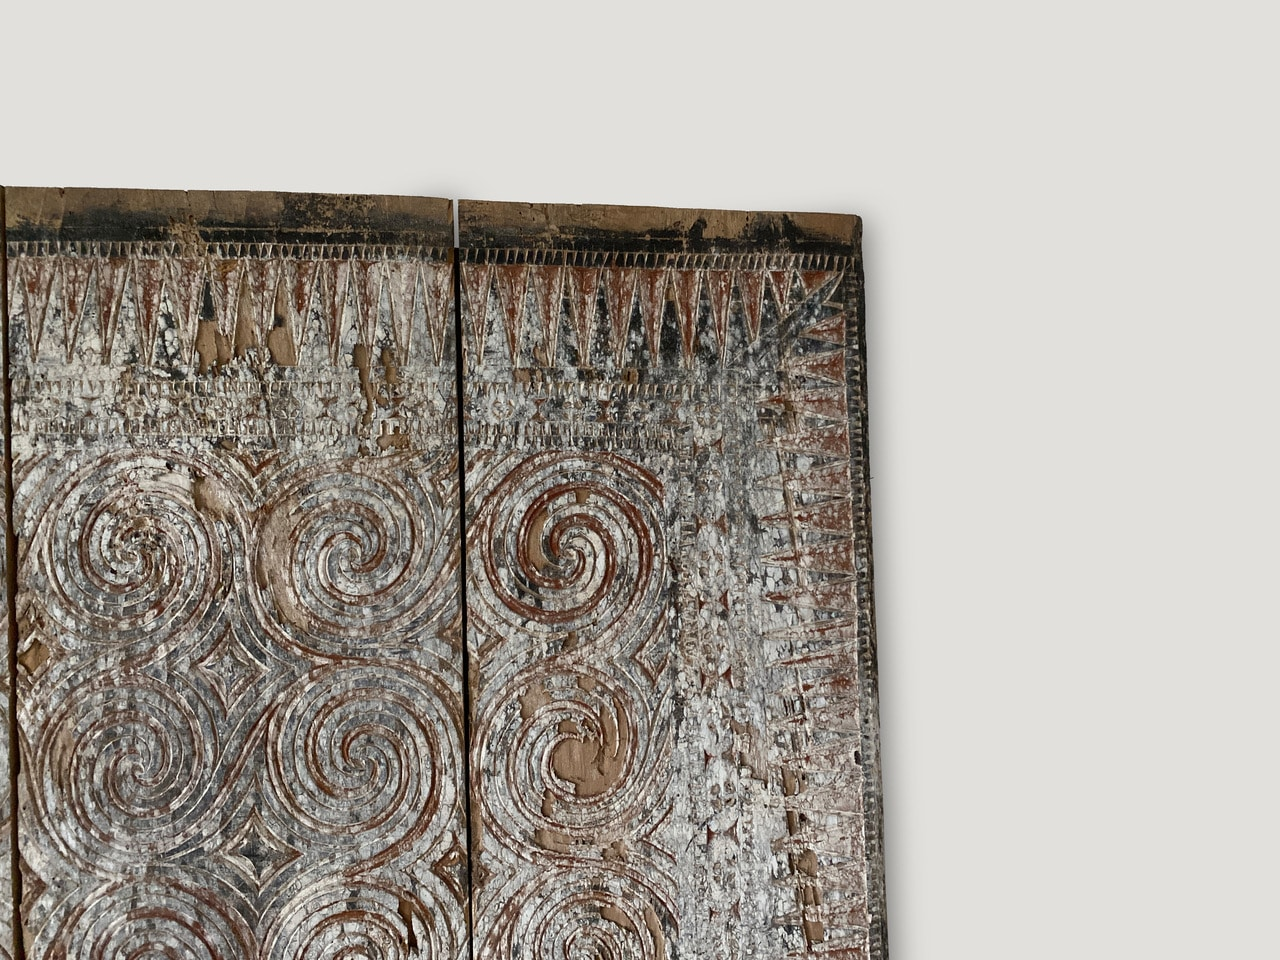 hand-carved ancient panel from Toraja, Sulawesi